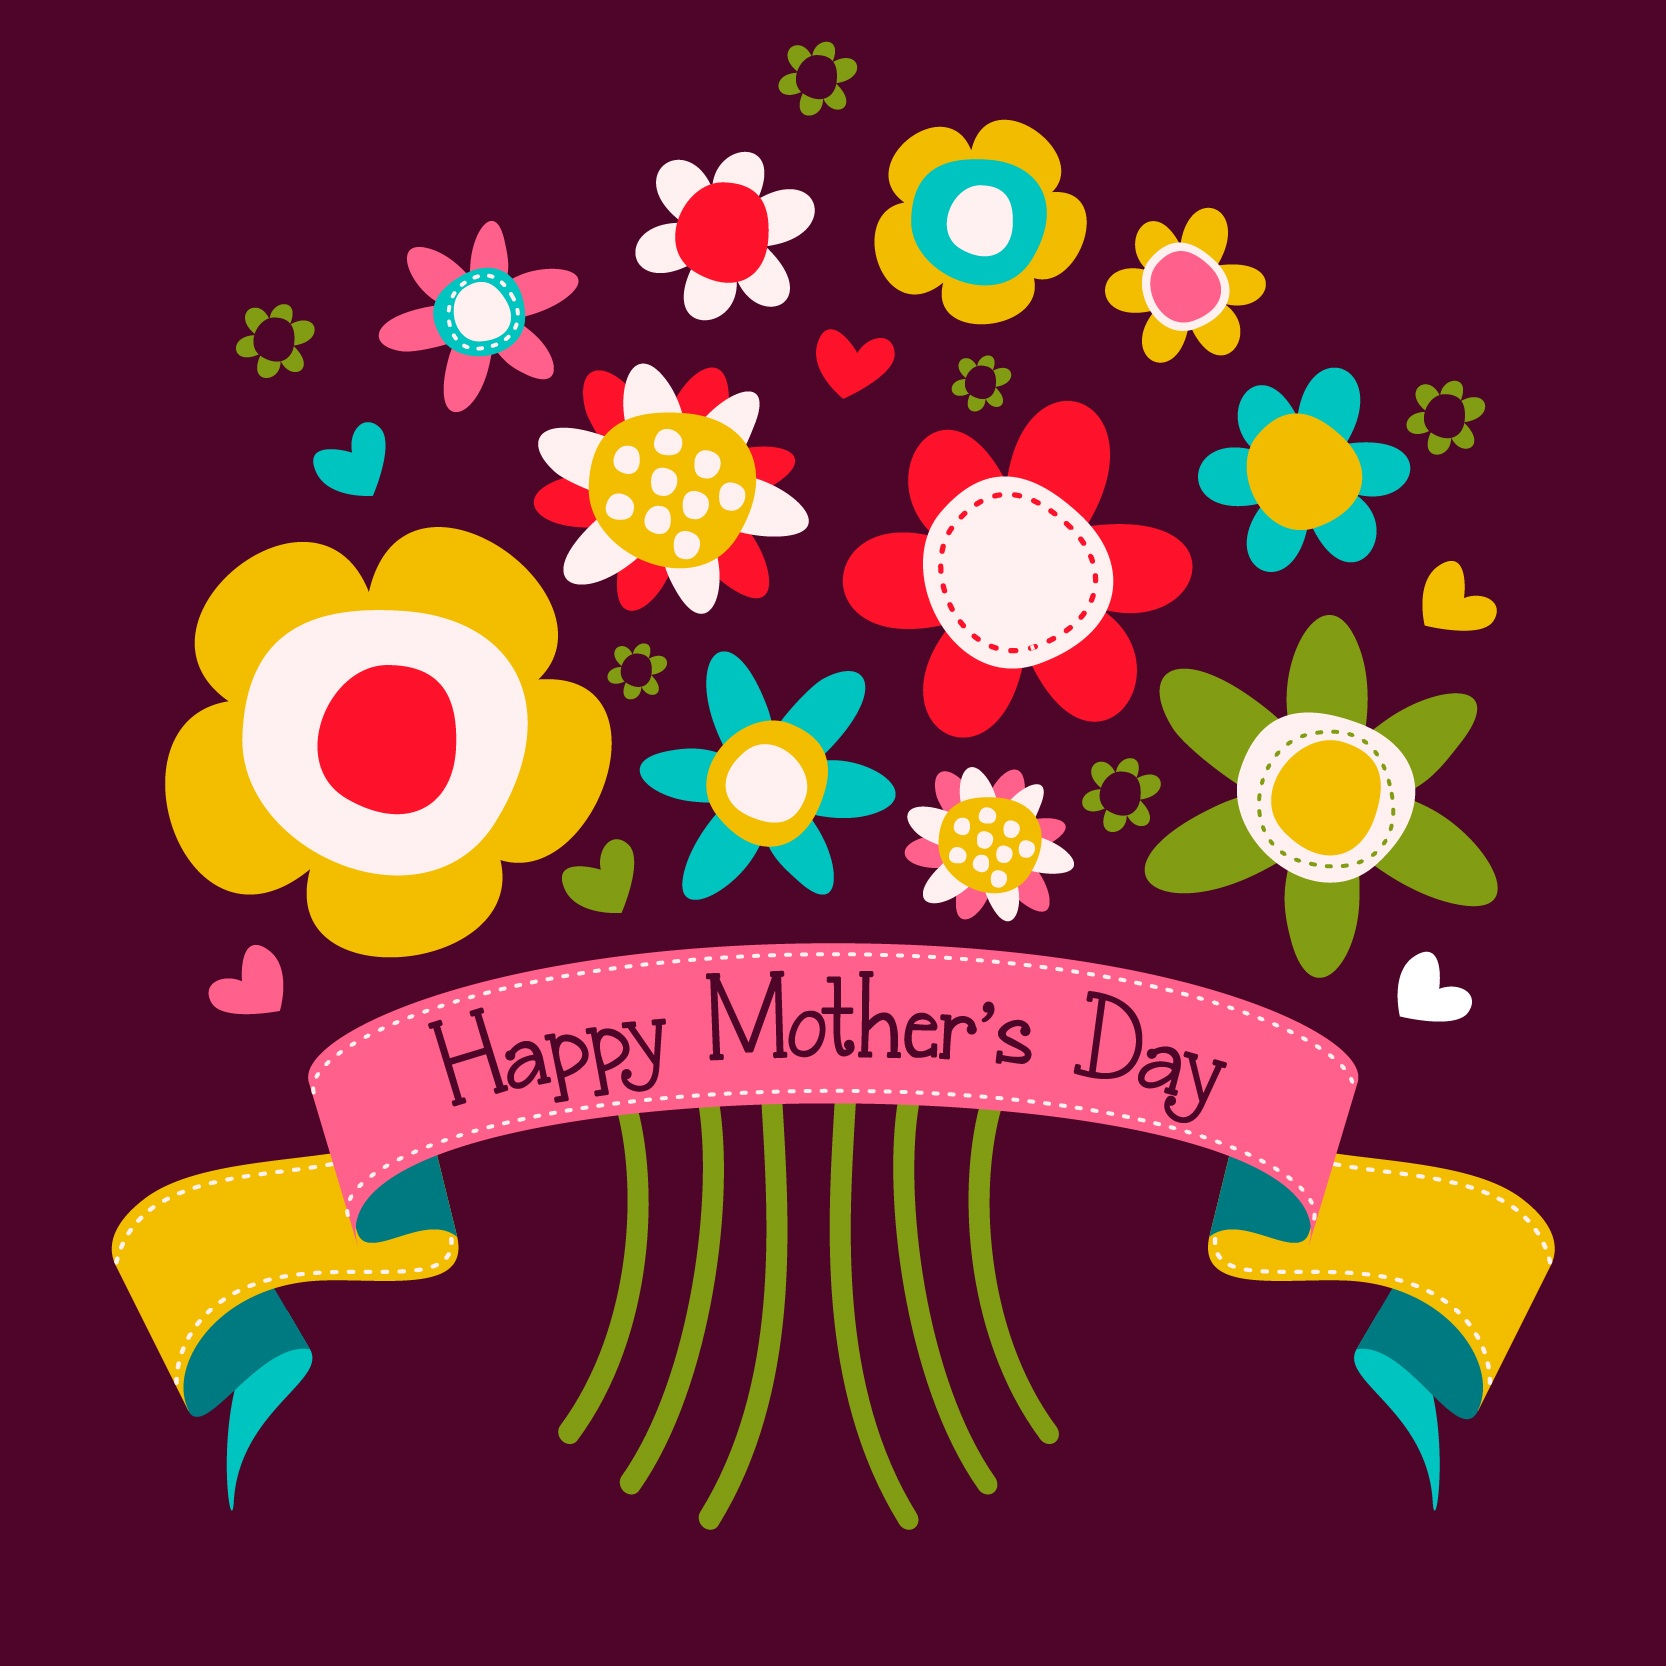 Mother's Day Inspirational Wallpaper